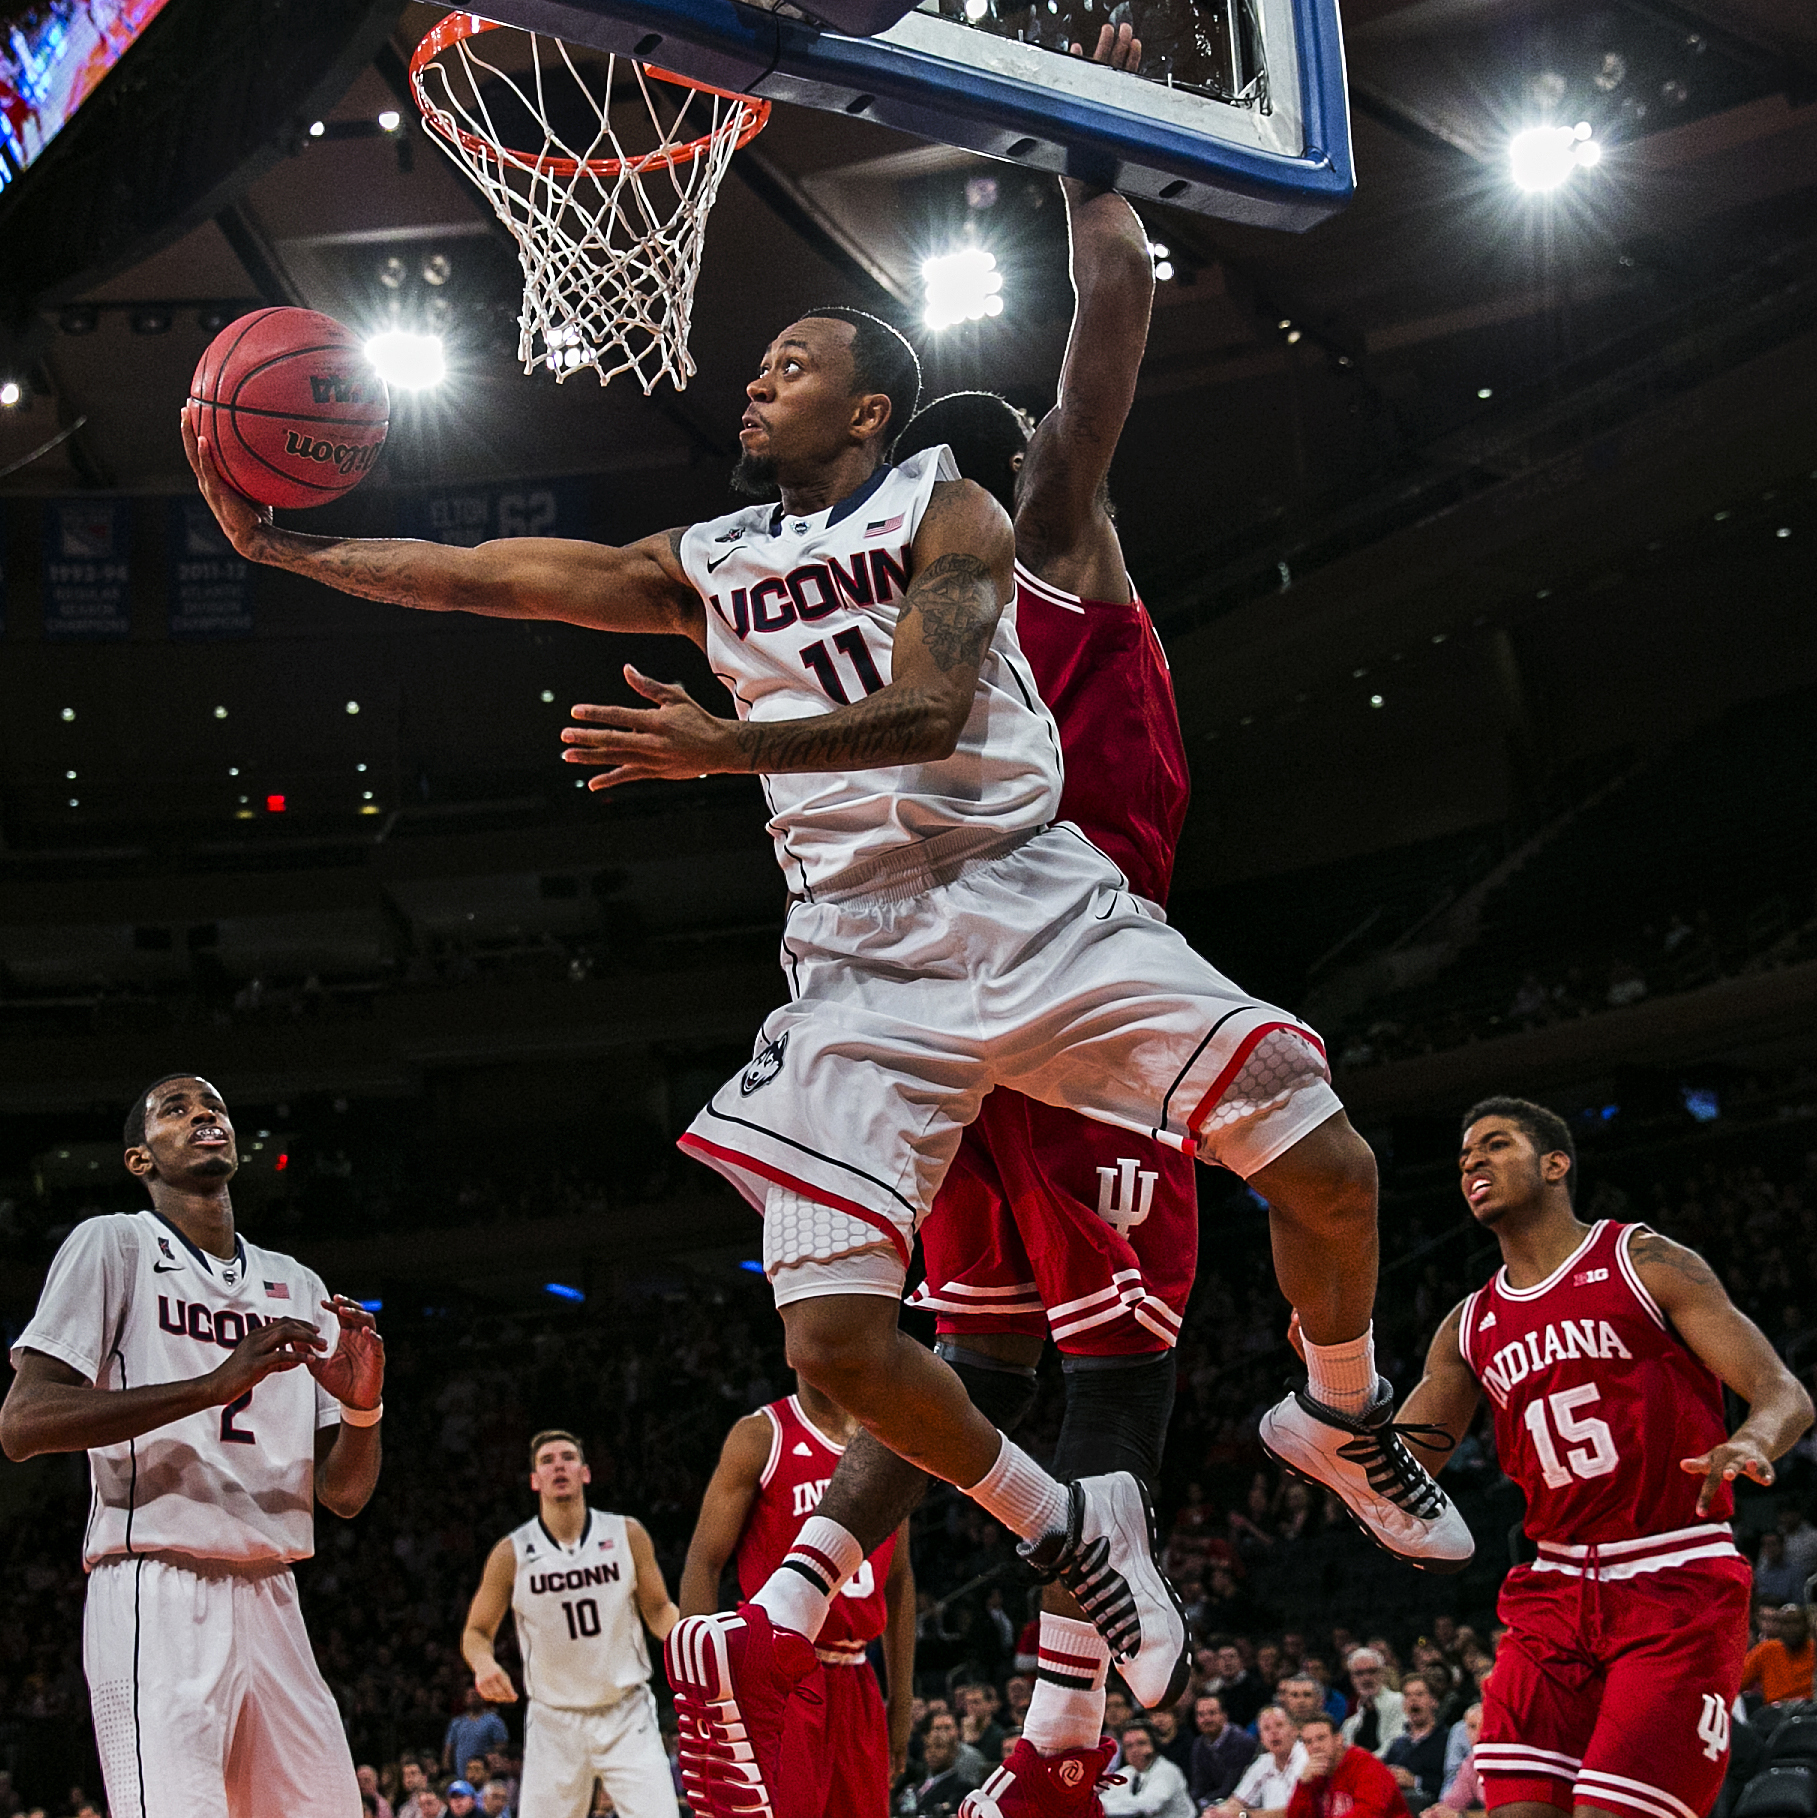 Connecticut guard Ryan Boatright (11) goes for a layup as Indiana forward Jeremy Hollowell (33) misses the block during second half action of the 2K Sports Classic Championship game between the #18 UConn Huskies and the Indiana University Hoosiers on Nov. 22, 2013 at the Madison Square Garden in New York, N.Y. UConn won the game 59-58.